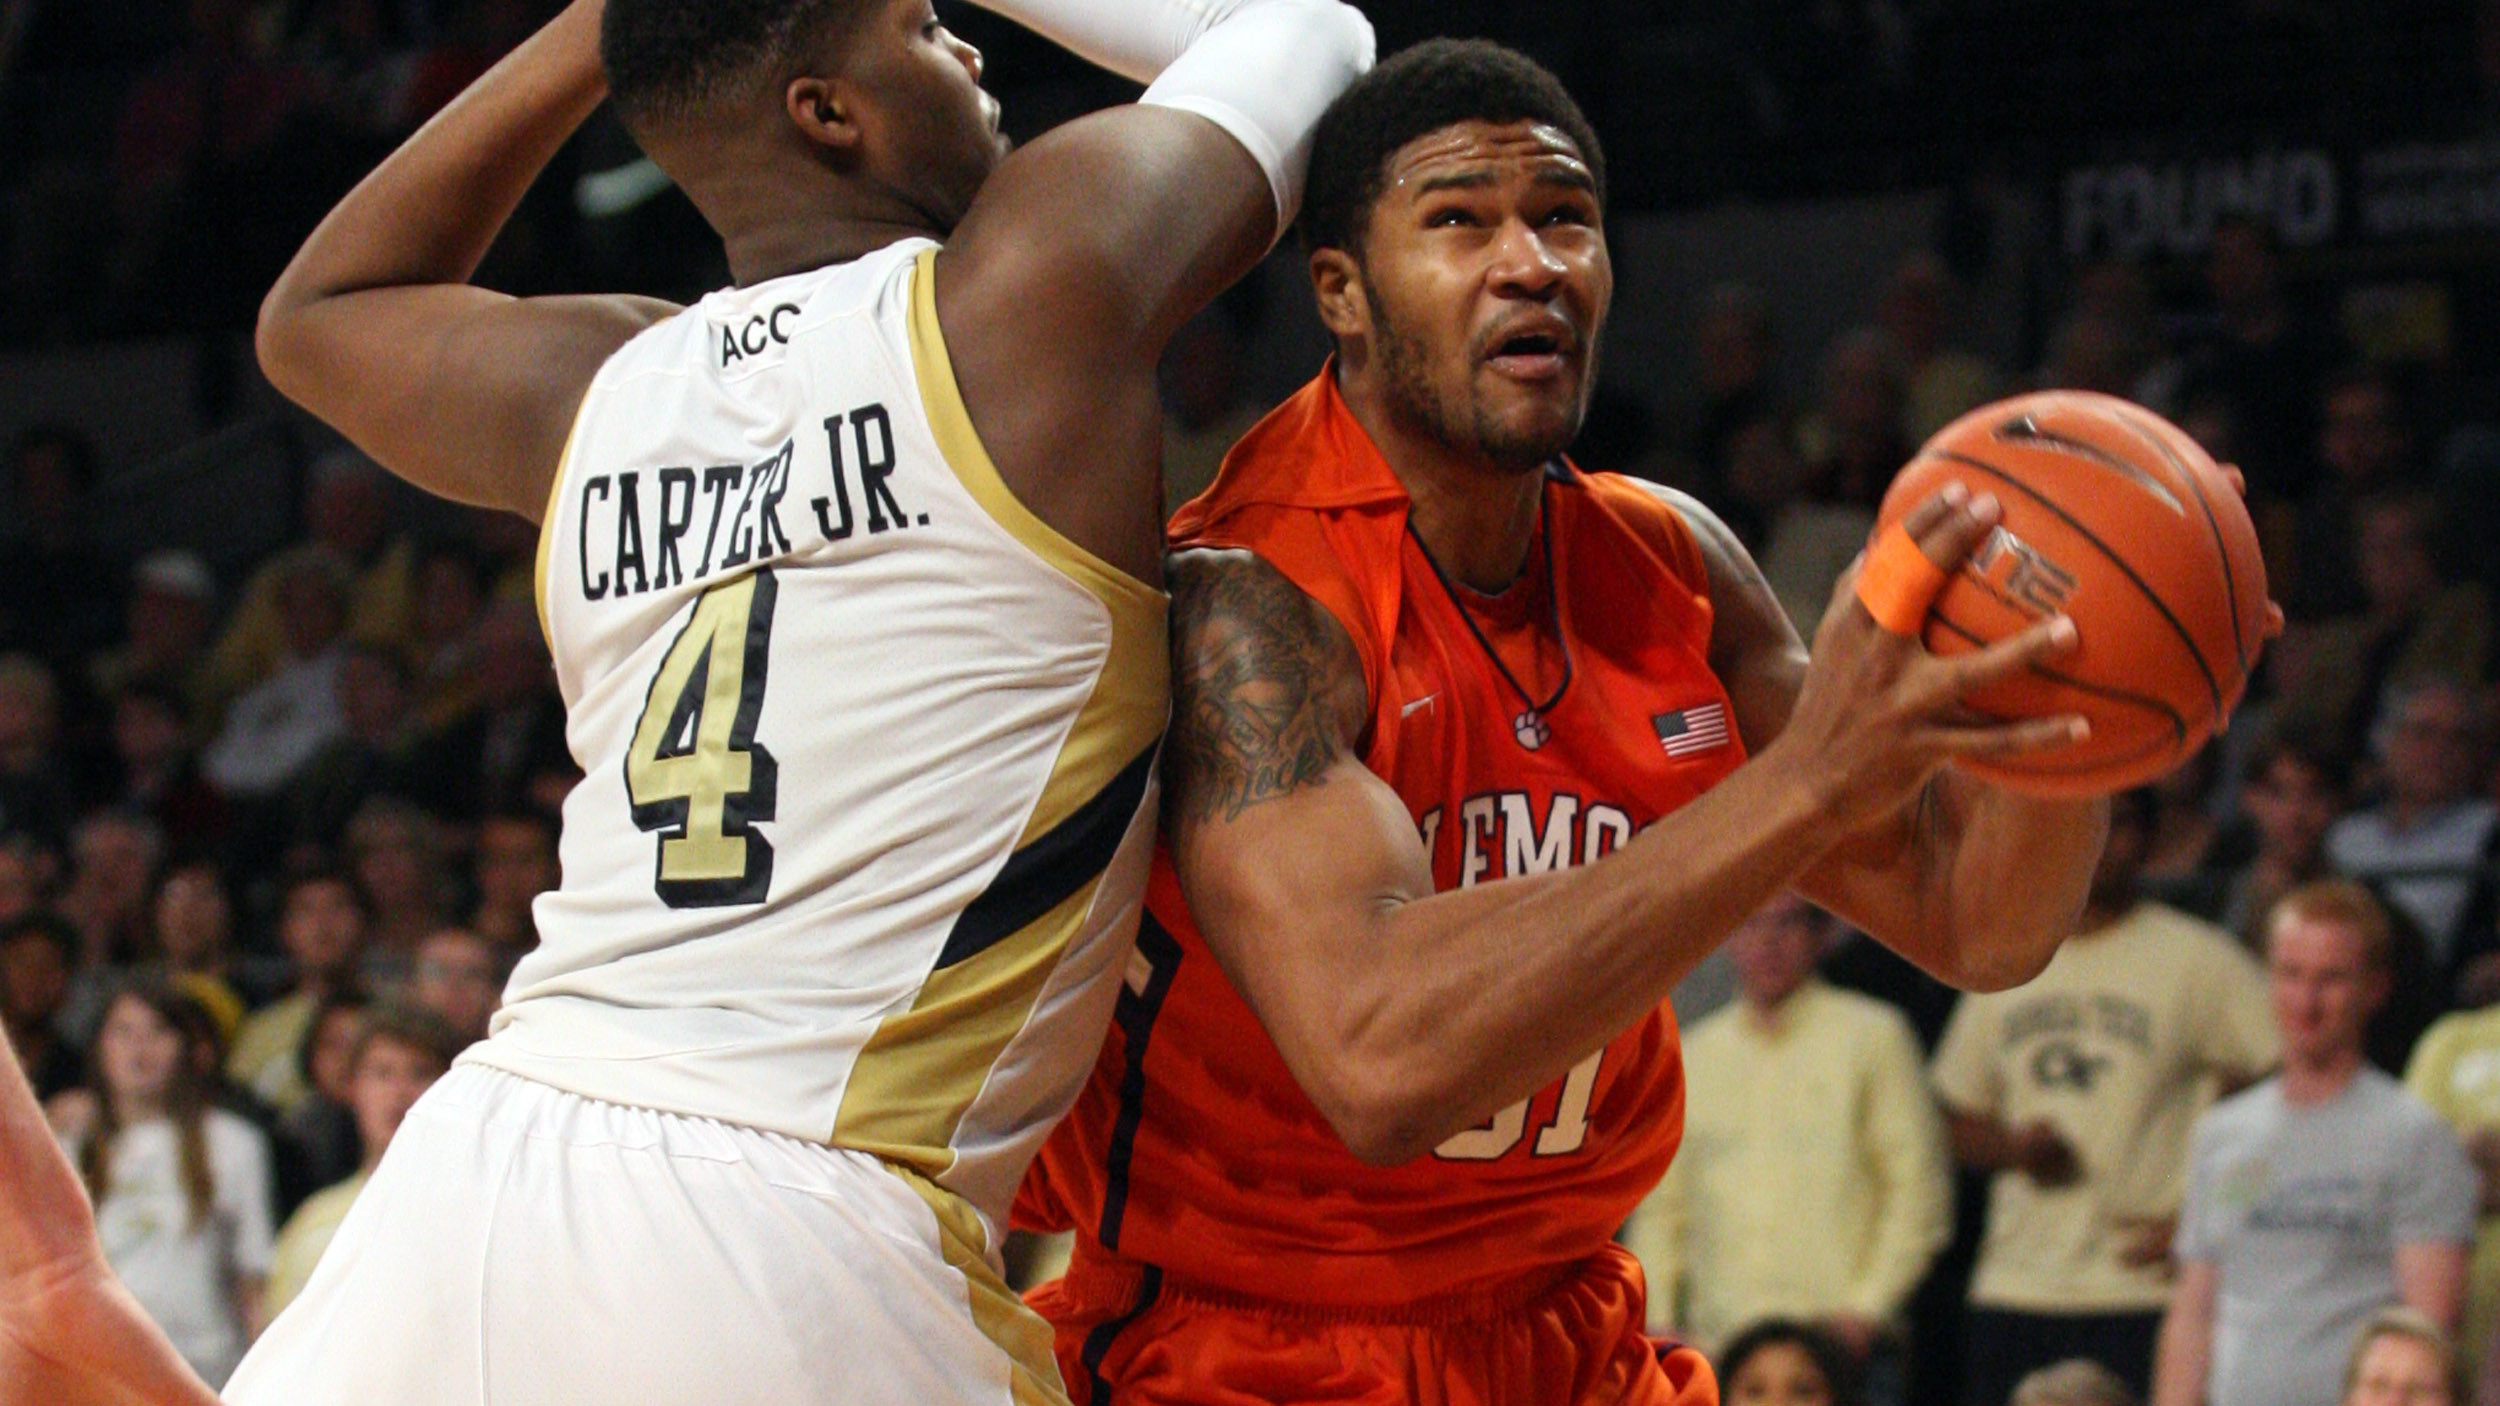 Maryland Too Much for Clemson in College Park, Tigers Fall 72-59